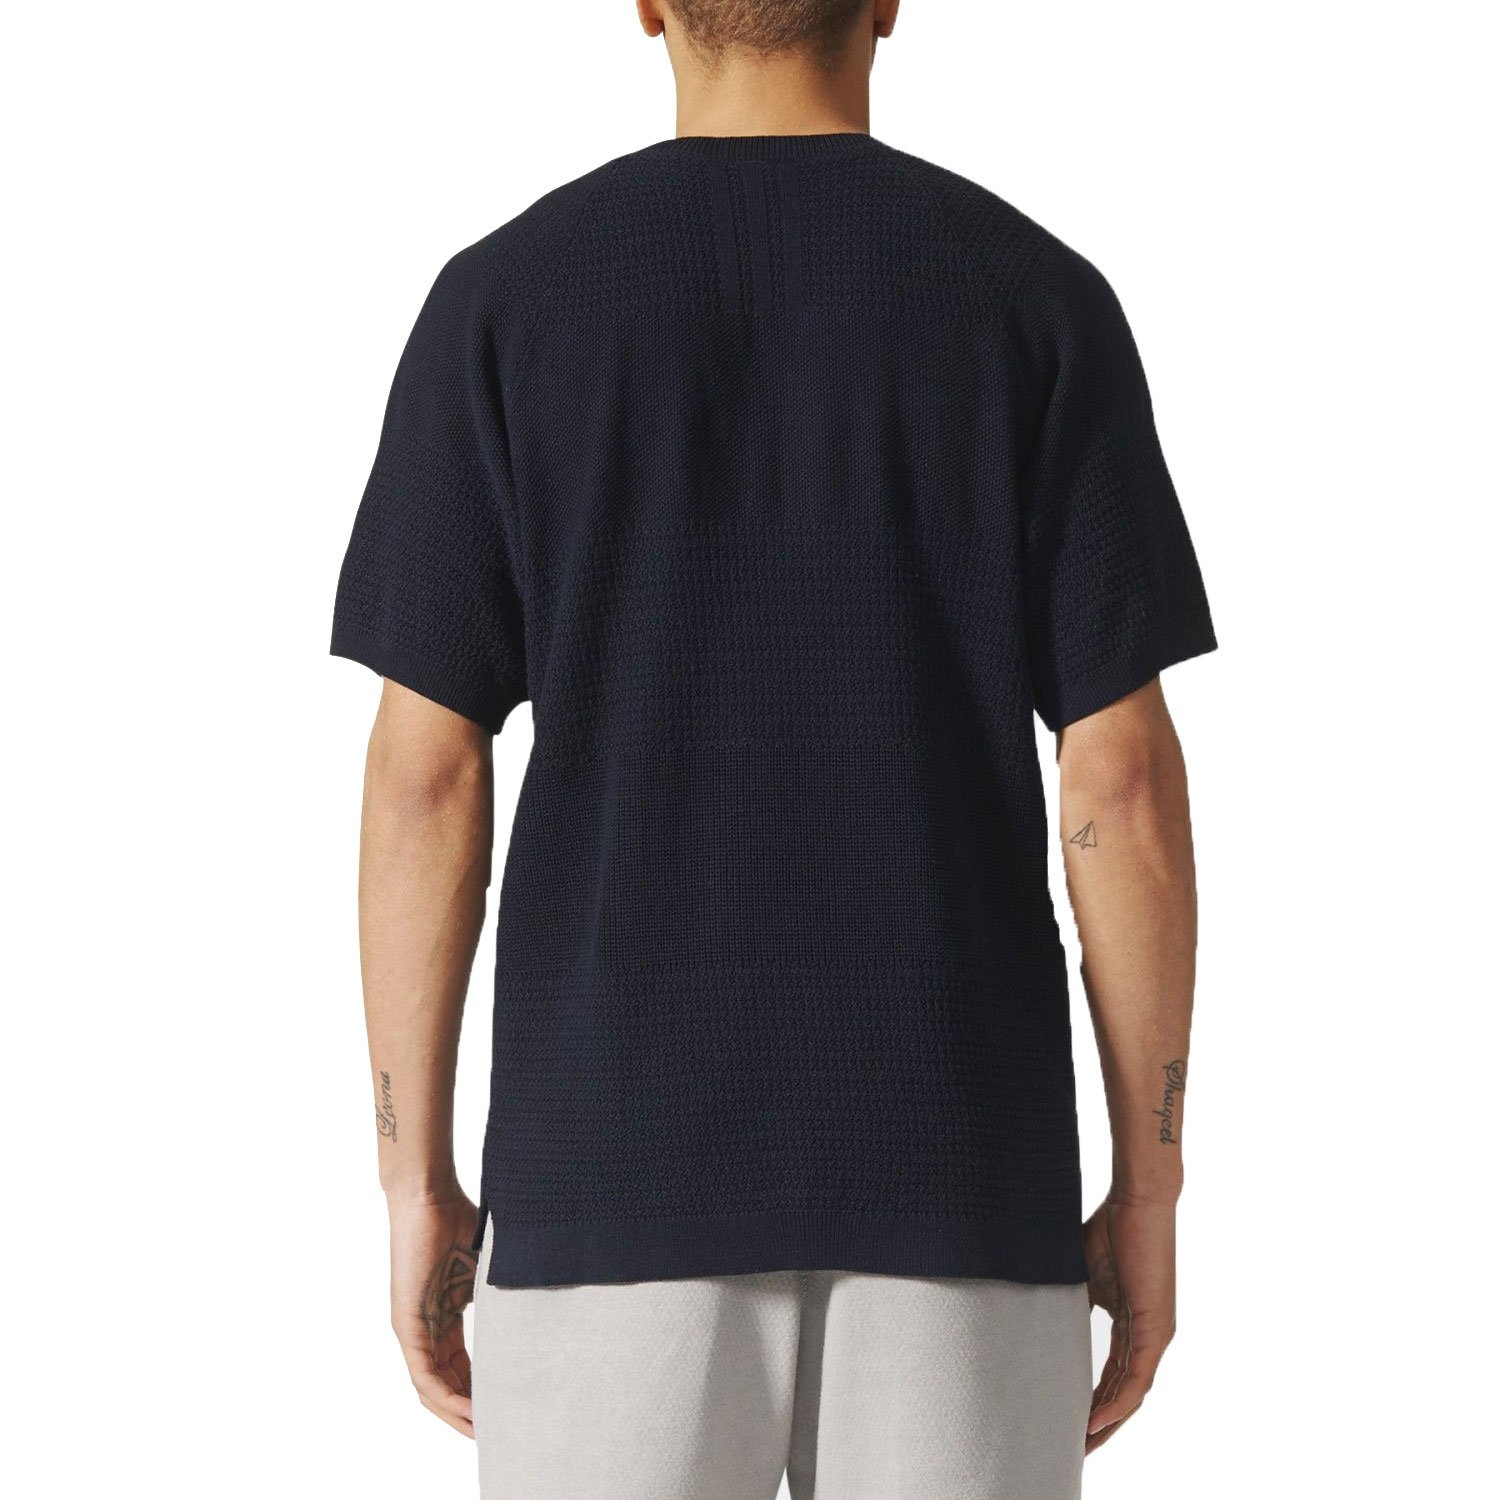 the best attitude 77b73 a94fd Adidas Mens Wings + Horns Linear Tee Night Navy BK0238 (Size S)  Amazon.in Clothing  Accessories